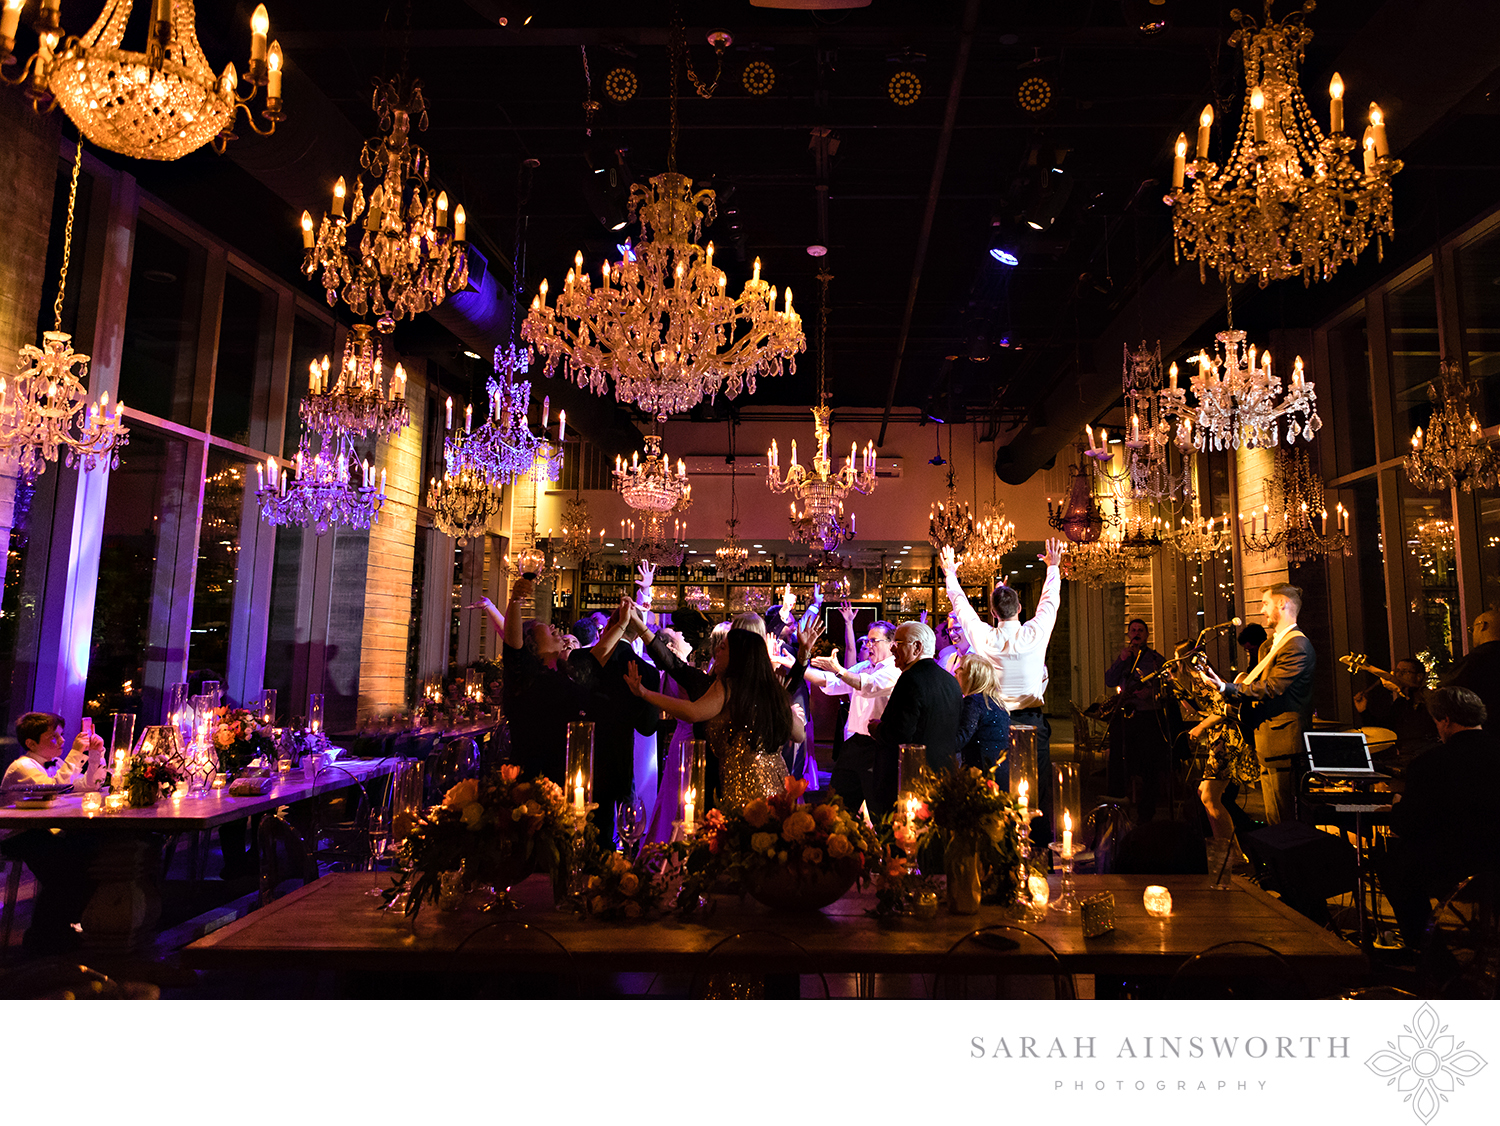 20_the-dunlavy-houston-wedding-houston-wedding-venue-with-chandeliers-houston-restaurants-as-wedding-venues_04.jpg